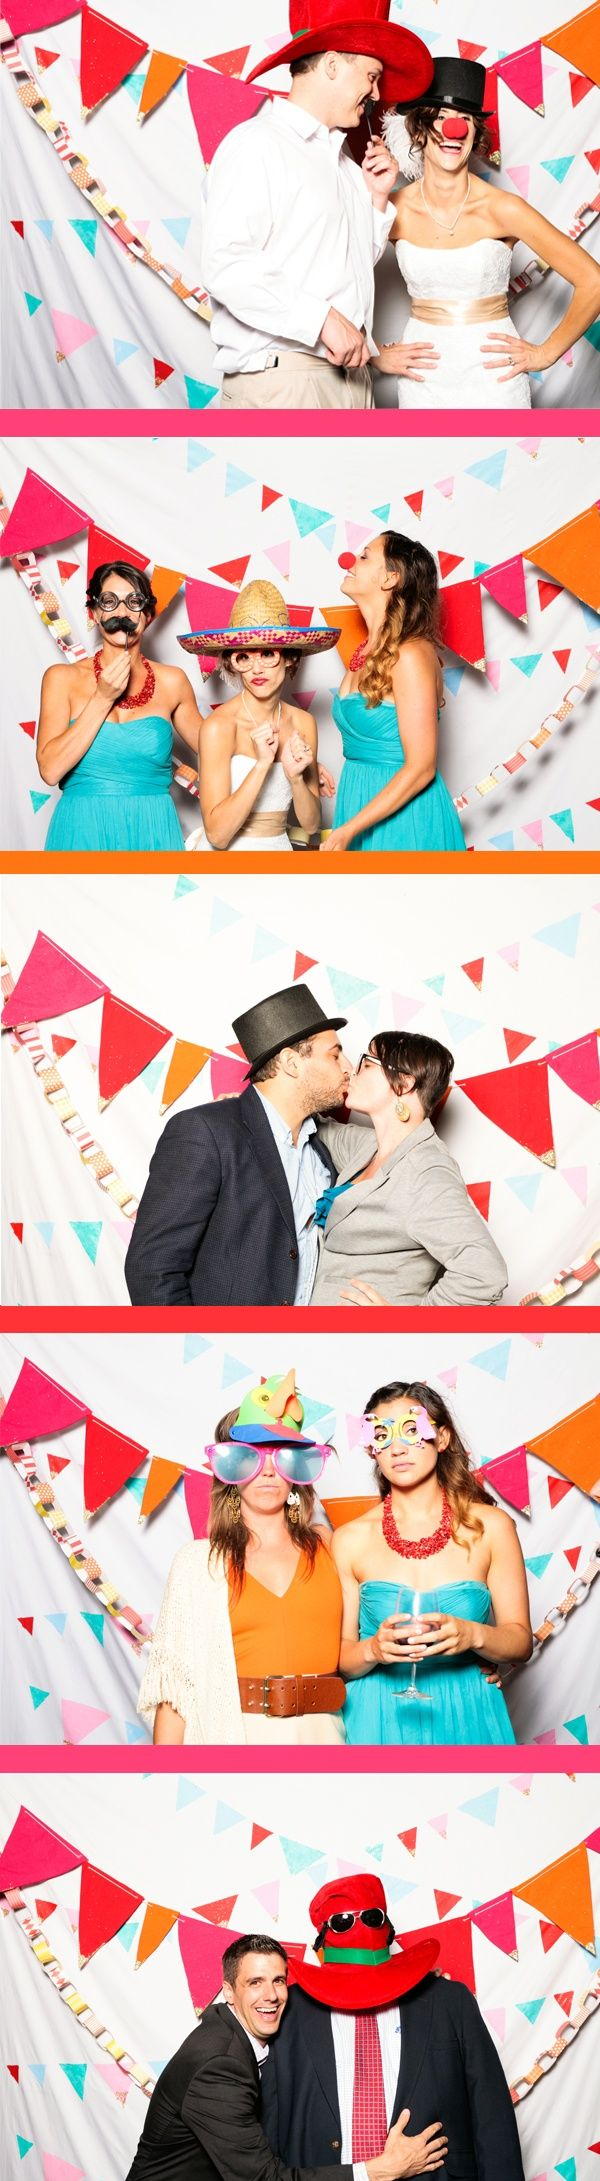 DIY Photo Booth Ideas & Free Printable Props | Hip Hip Hooray